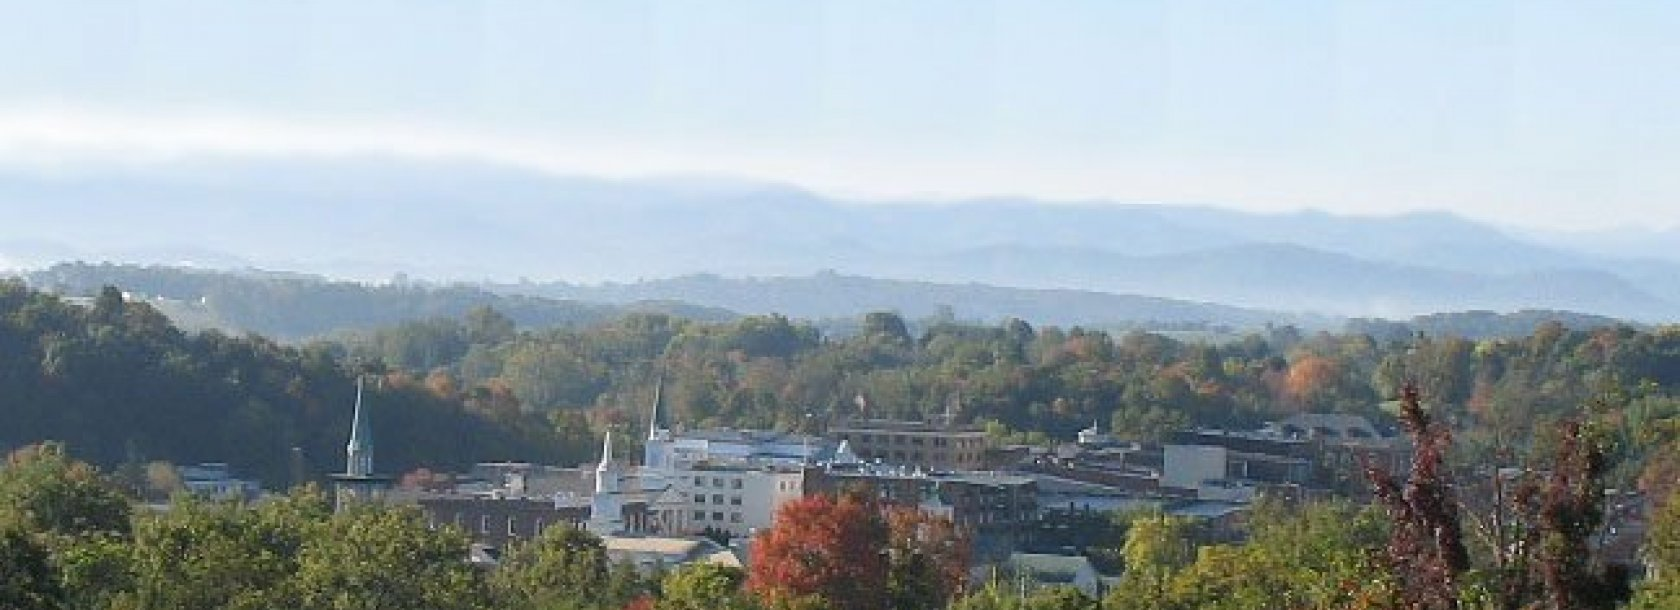 Downtown Greeneville Historic District in Greeneville, TN